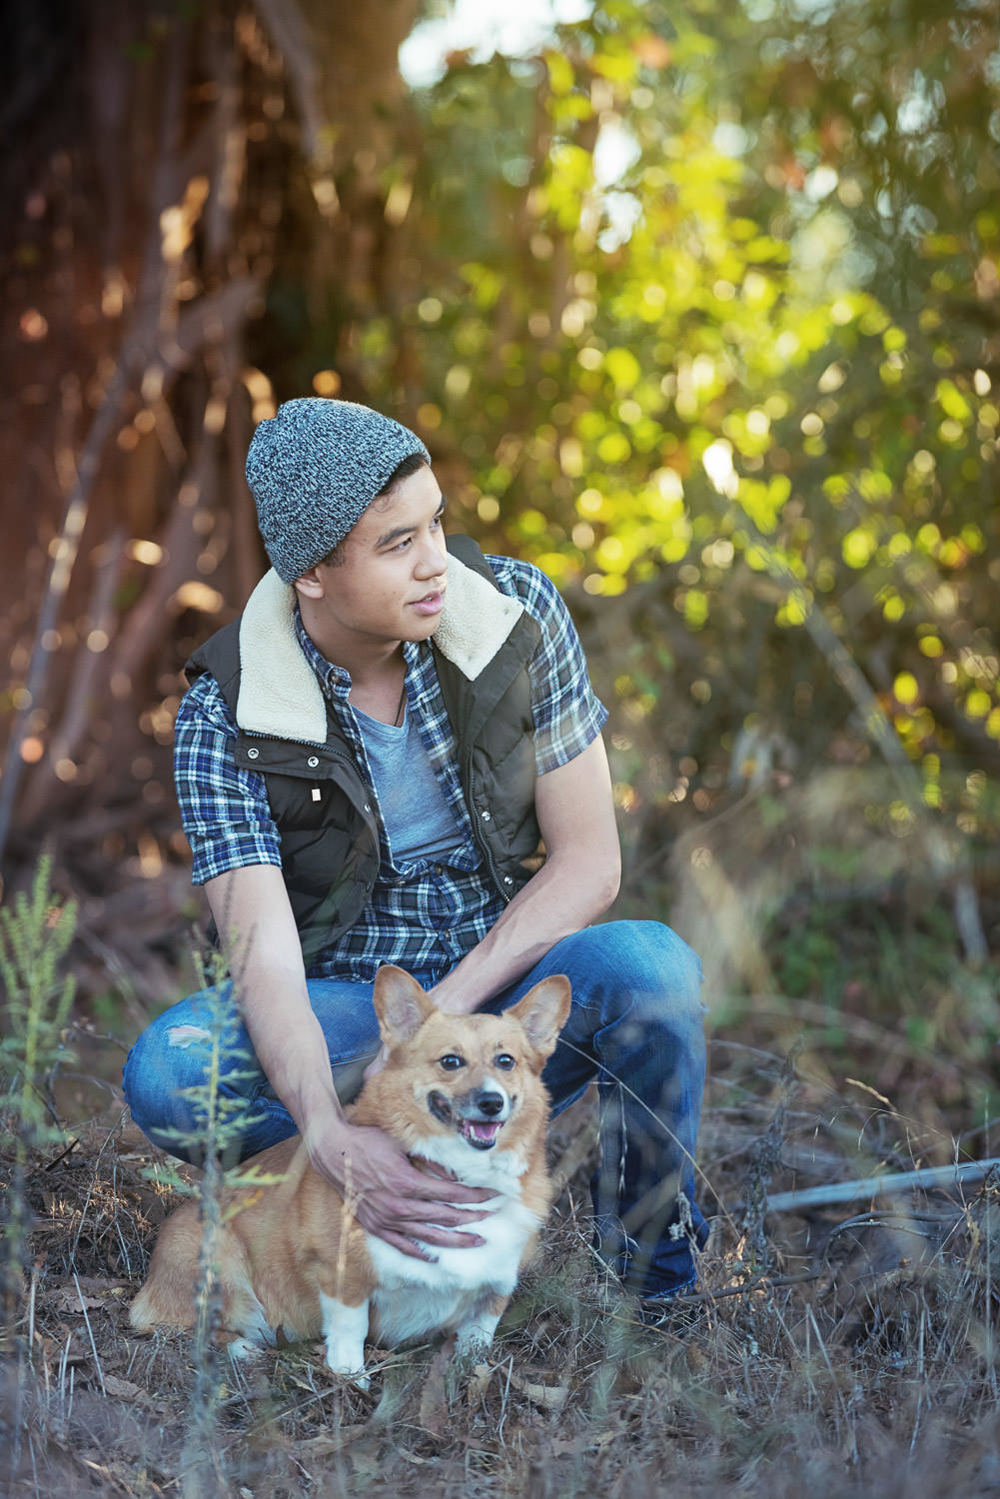 f27-Photography-Fashion-Shoot-Ventura-County-modeling-with-Welsh-Corgi